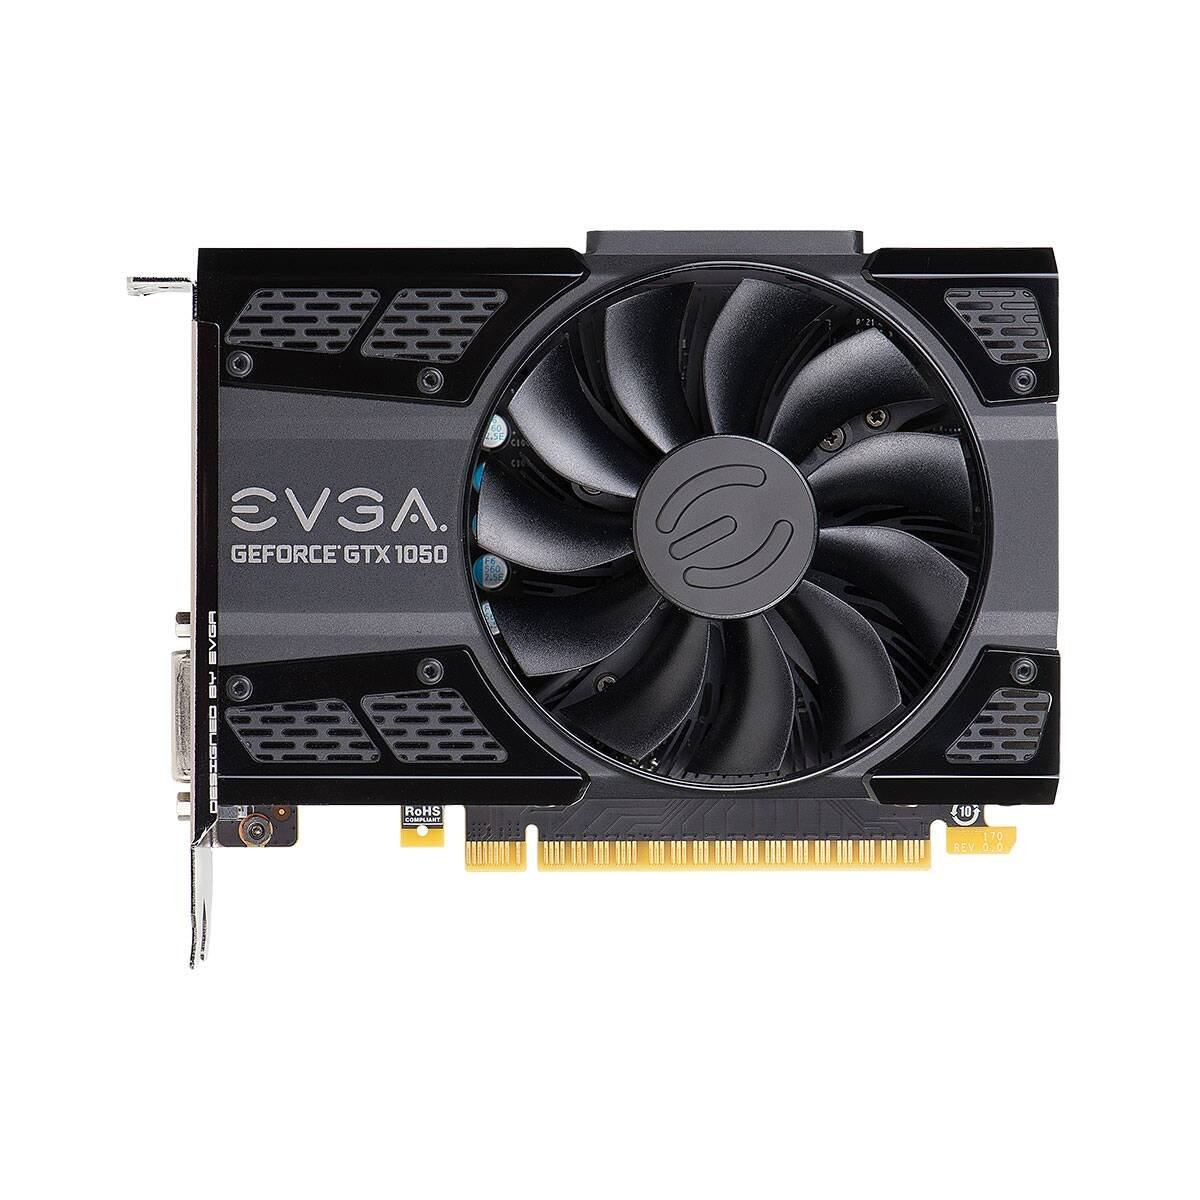 EVGA GTX 1050 GDDR5 2GB Graphics Card